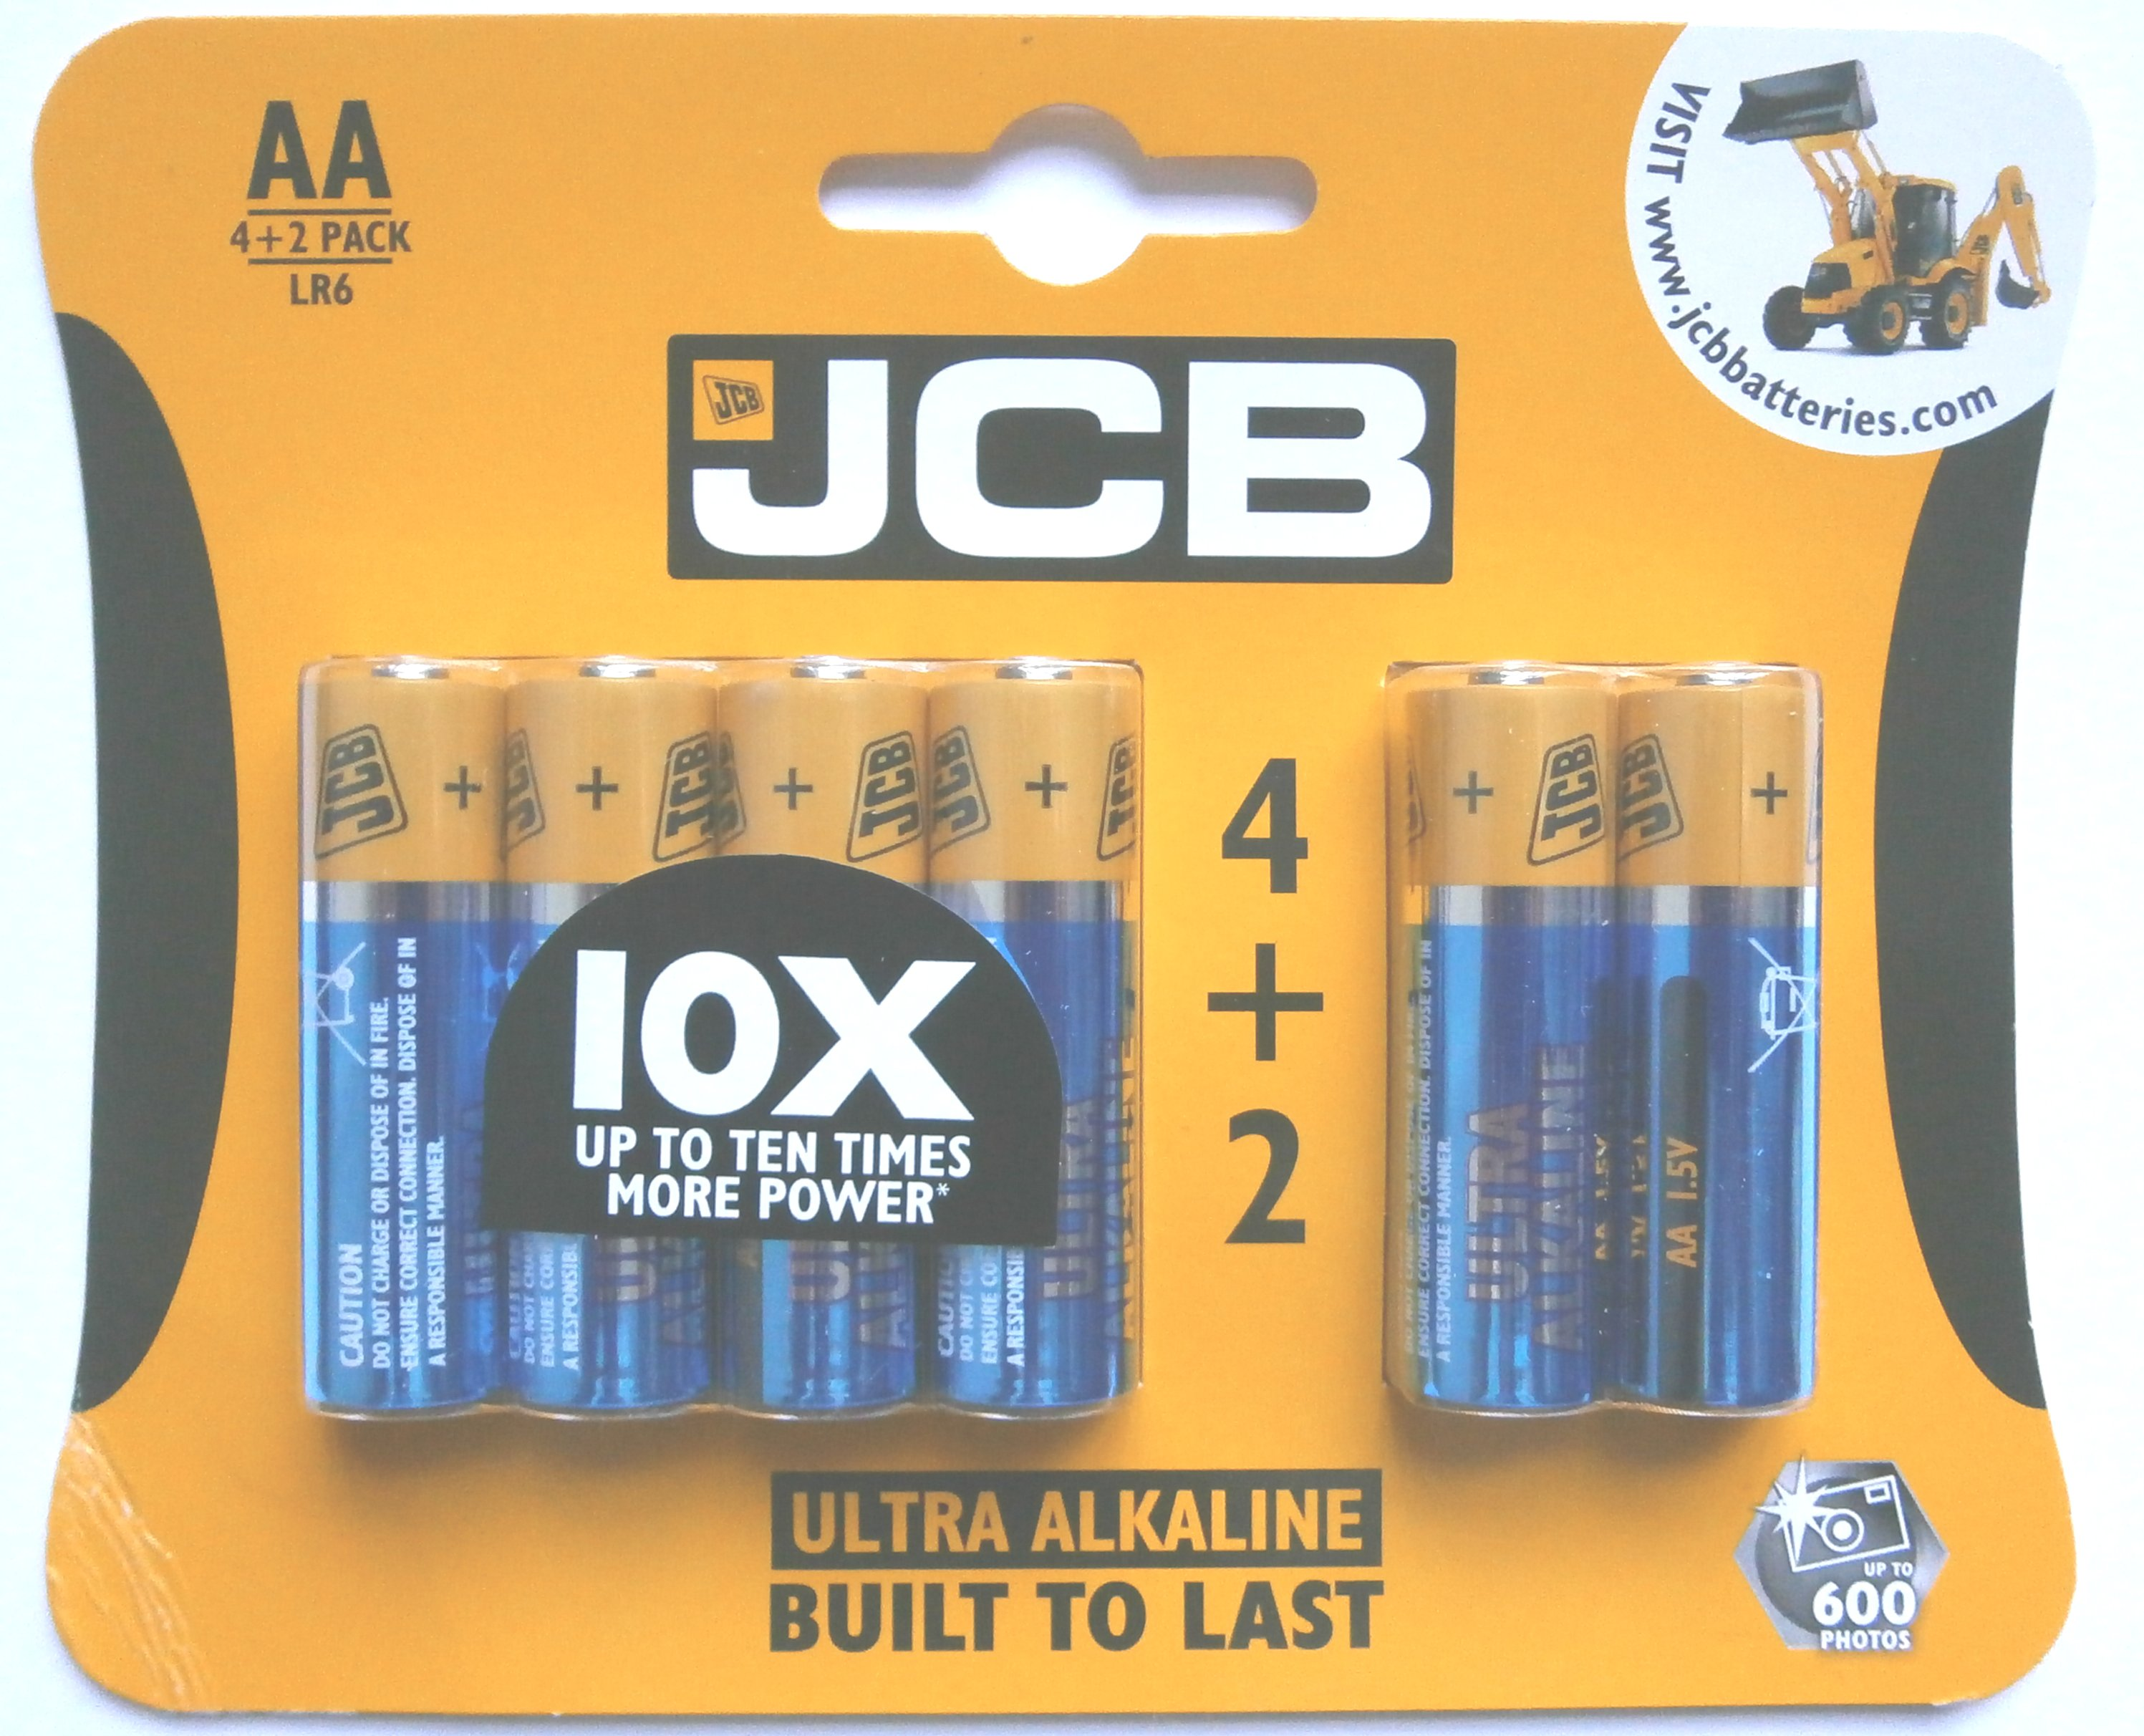 4+2 Pack of JCB Ultra Alkaline 1.5 Volt AA Batteries